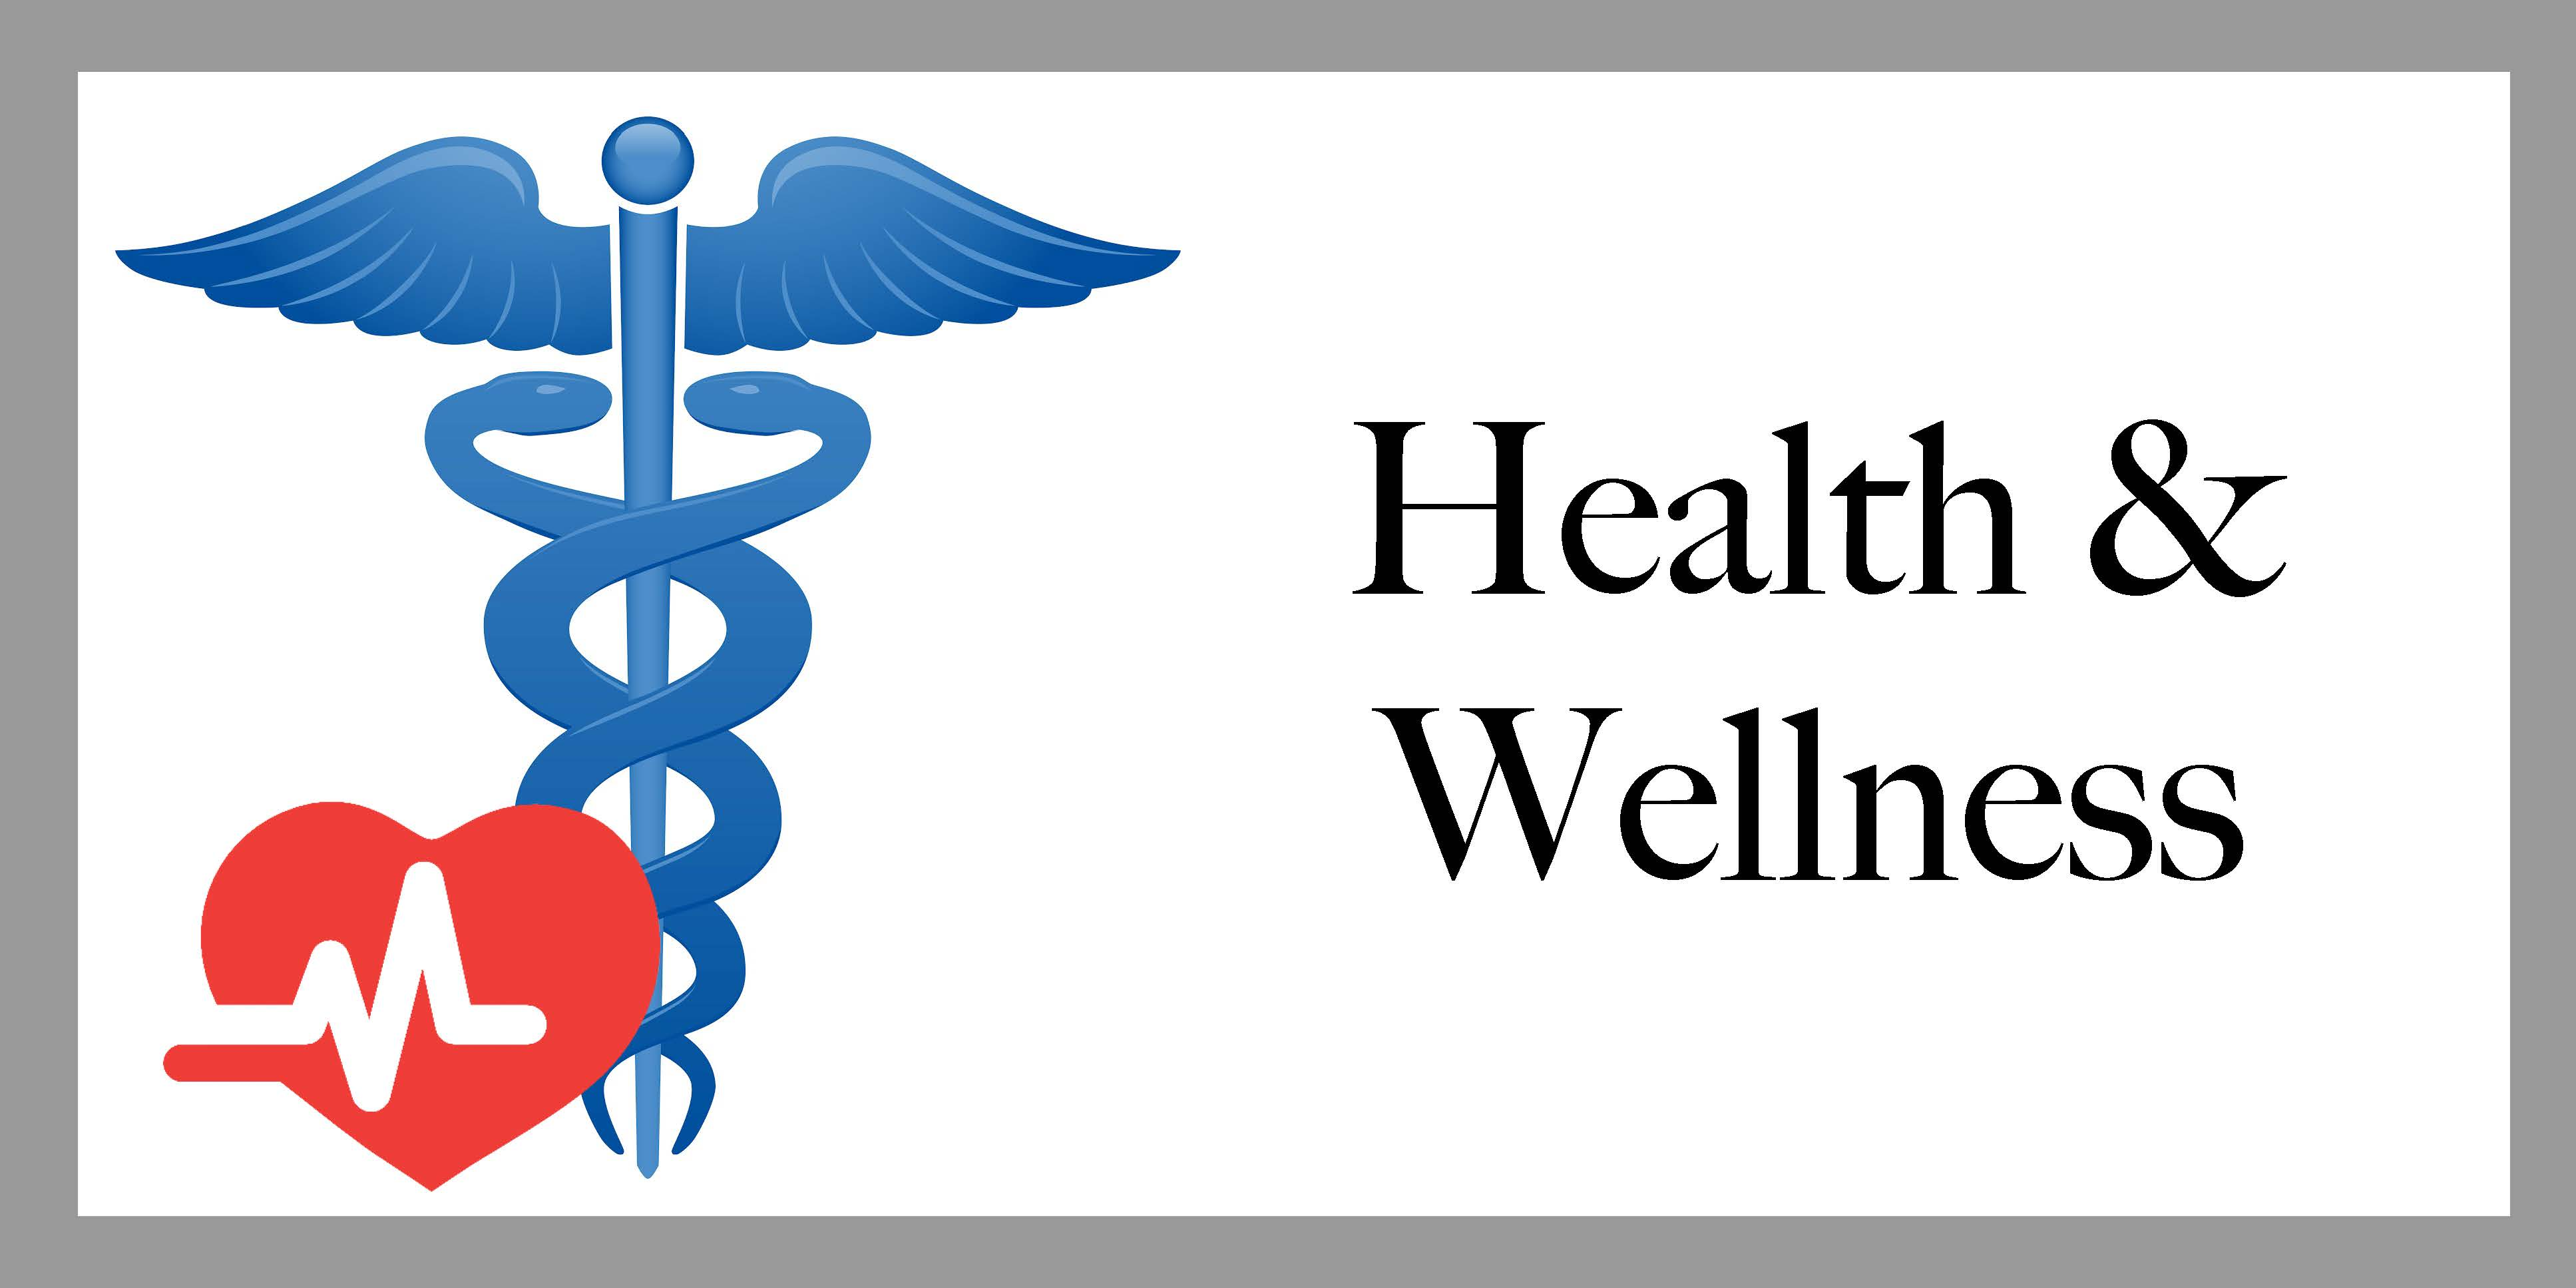 Clickable health and wellness emblem